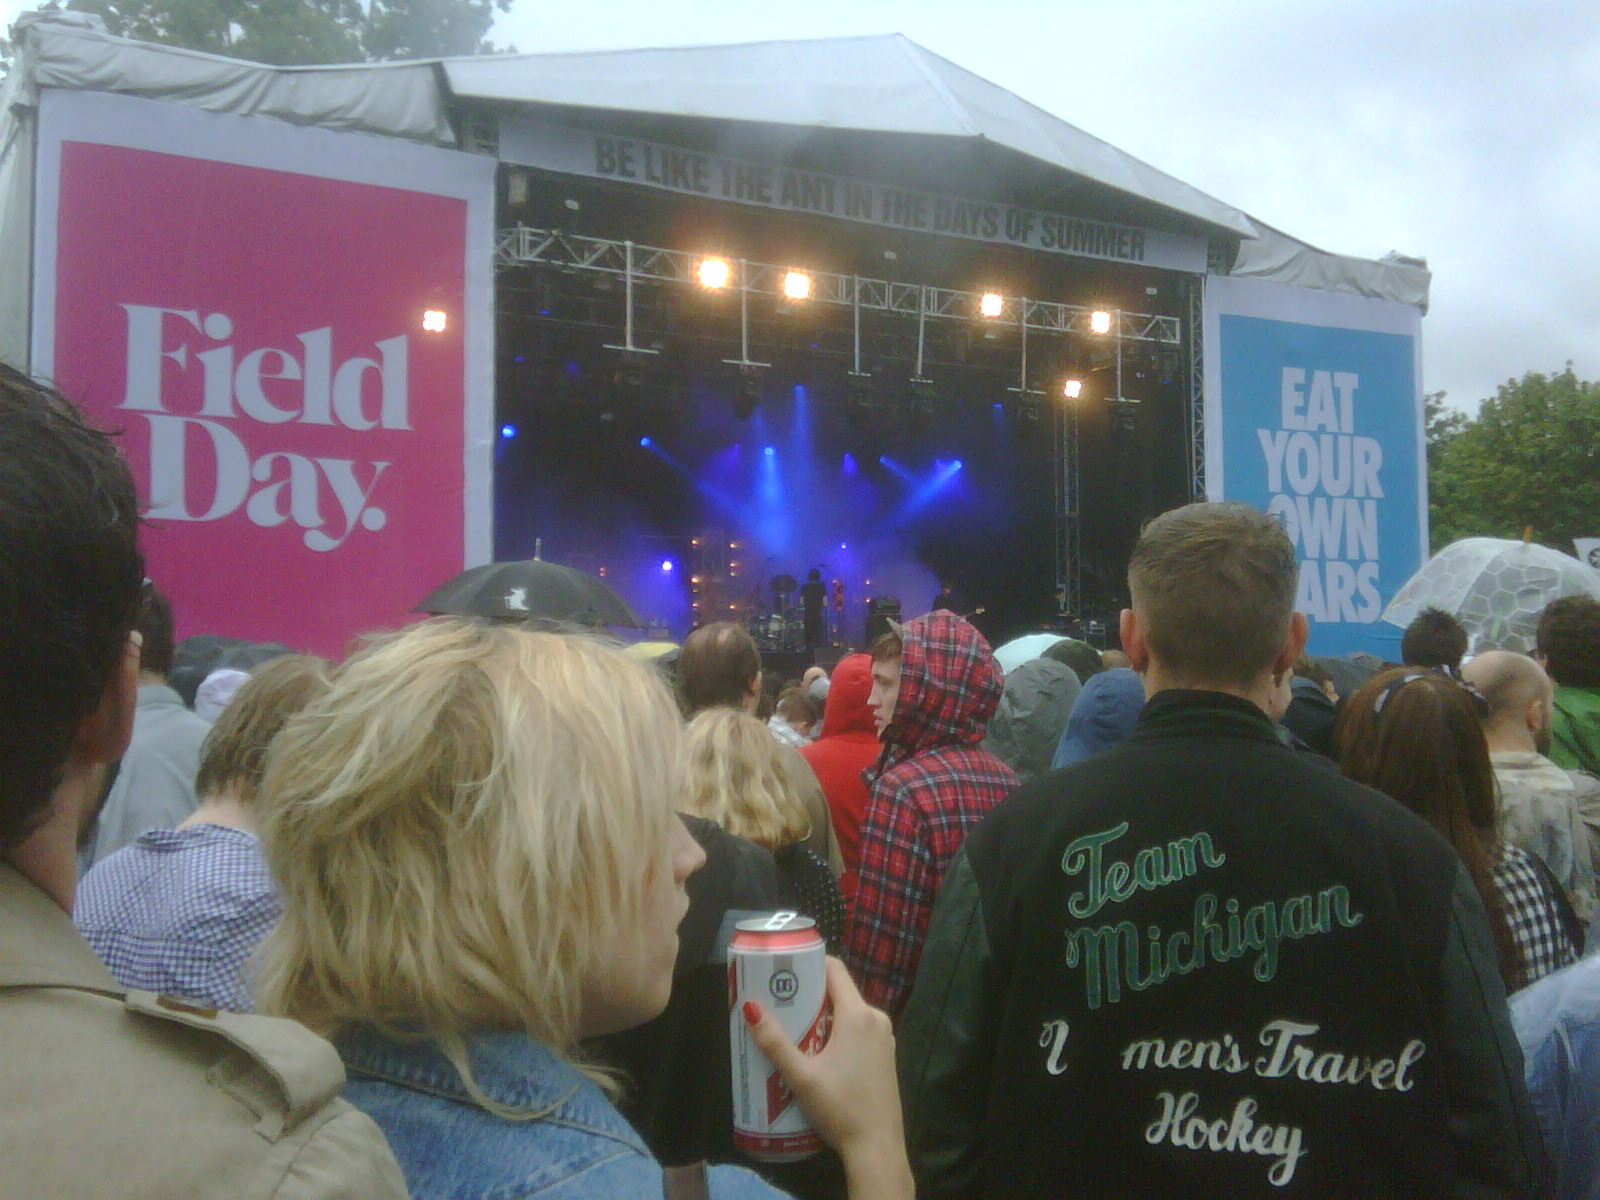 Field Day 2009: The Horrors on stage. The huge guy in the Team Michigan jacket is Oliver Sim from The xx.